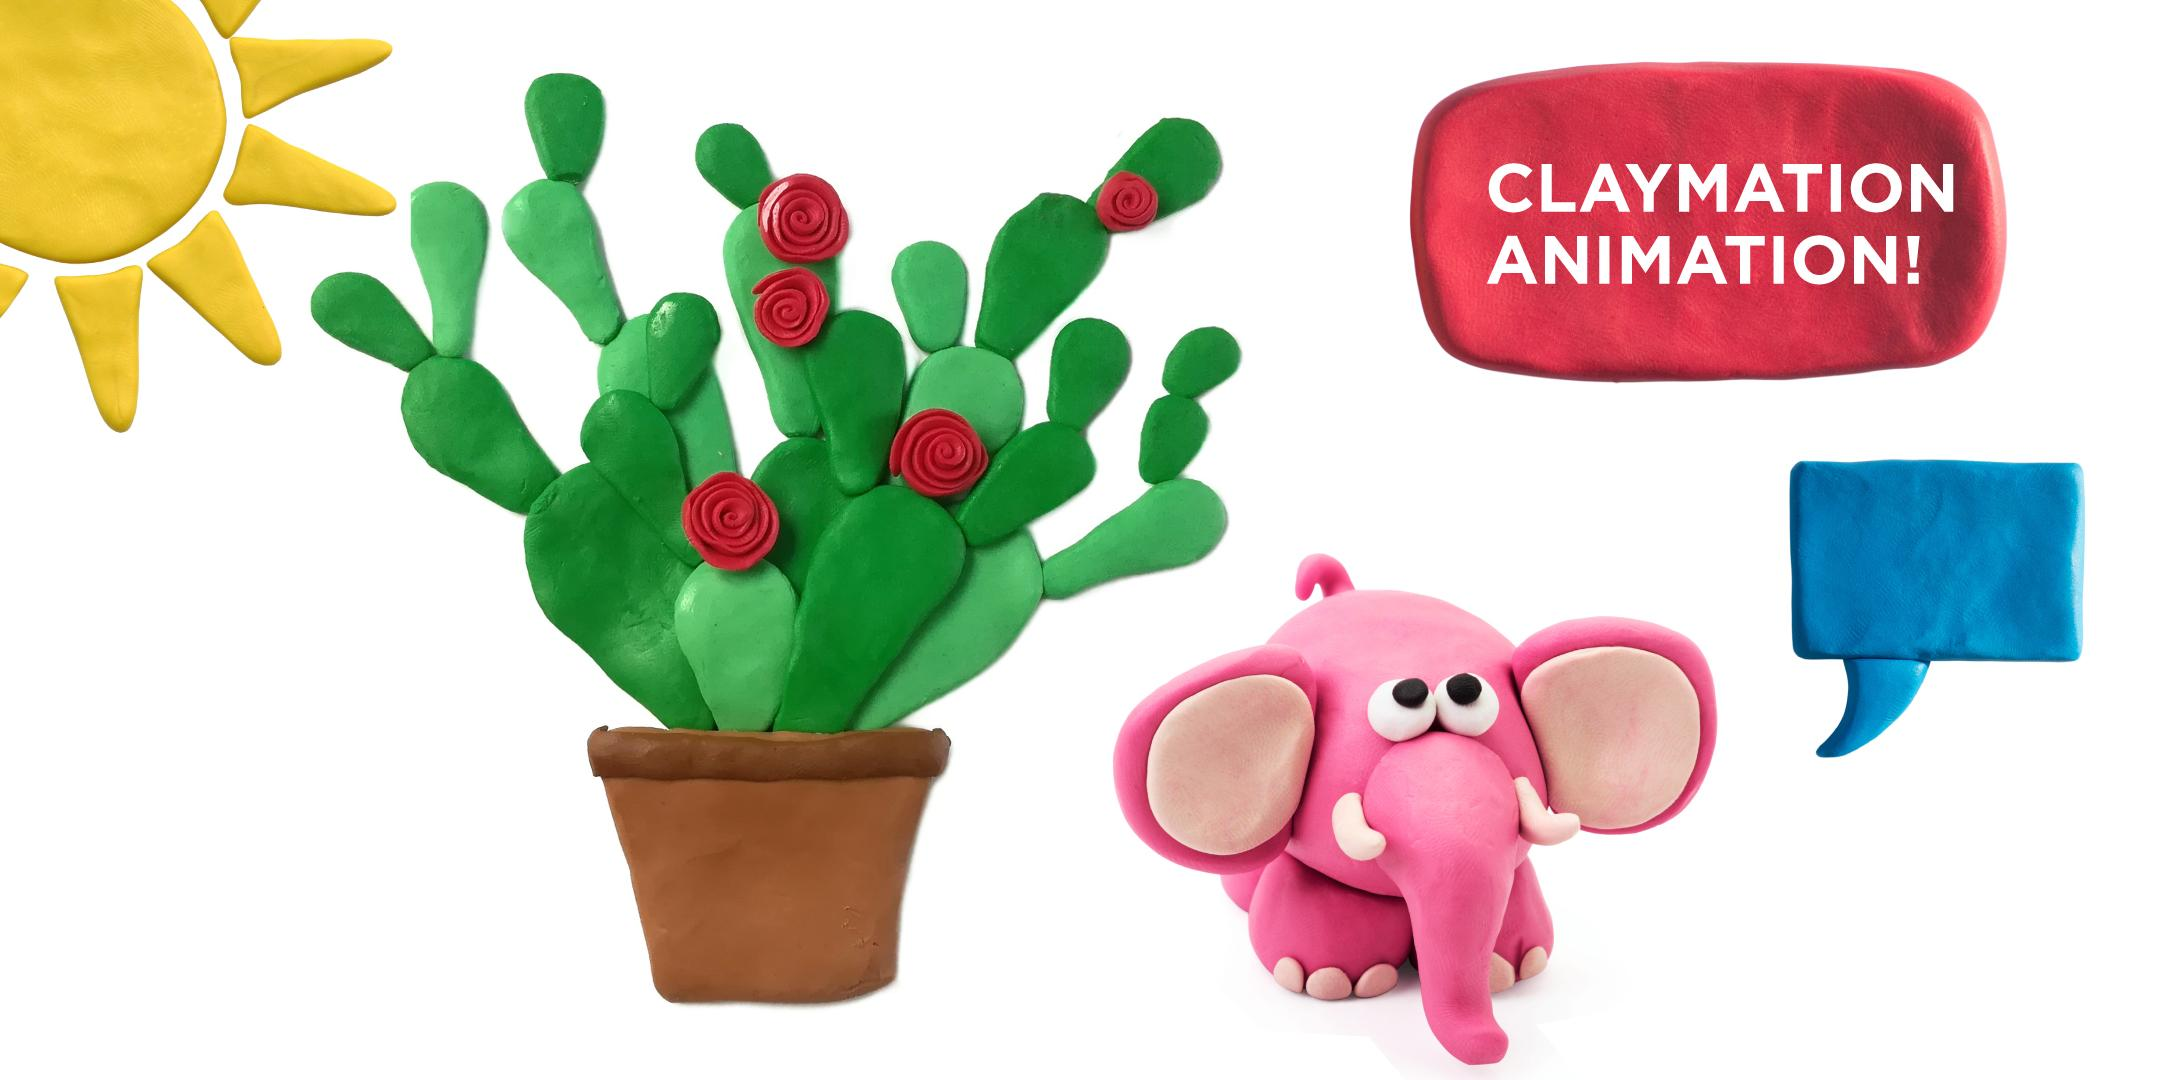 Youth Week 2020: Claymation Animation